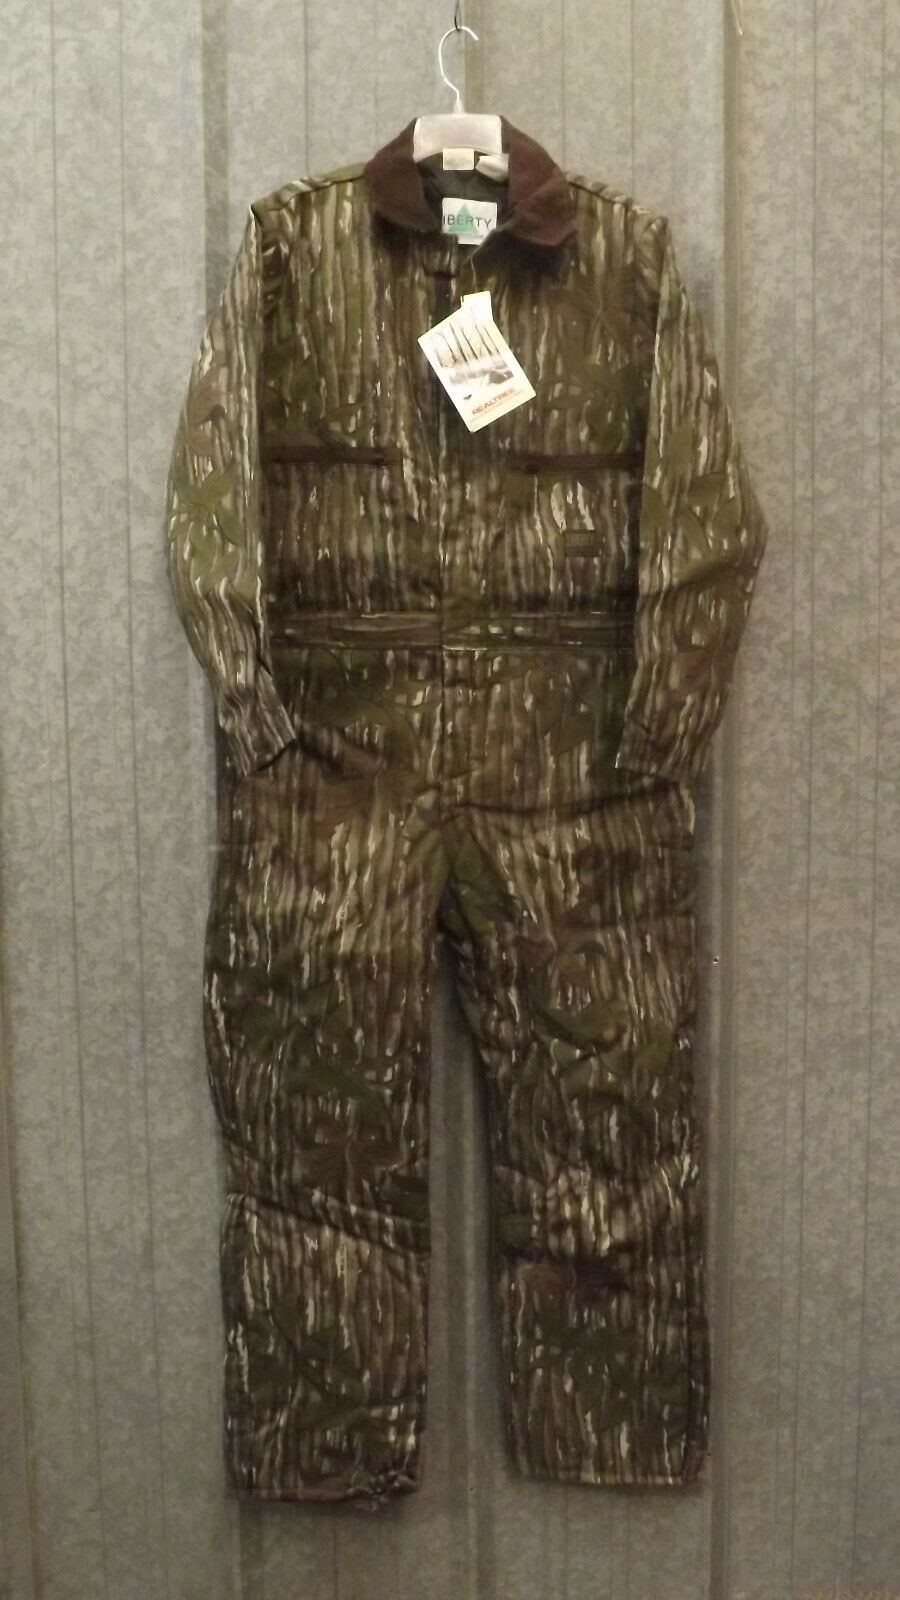 New Vtg Liberty Realtree  Leaf Camouflage Insulated Co lls sz M USA Made Camo  clearance up to 70%